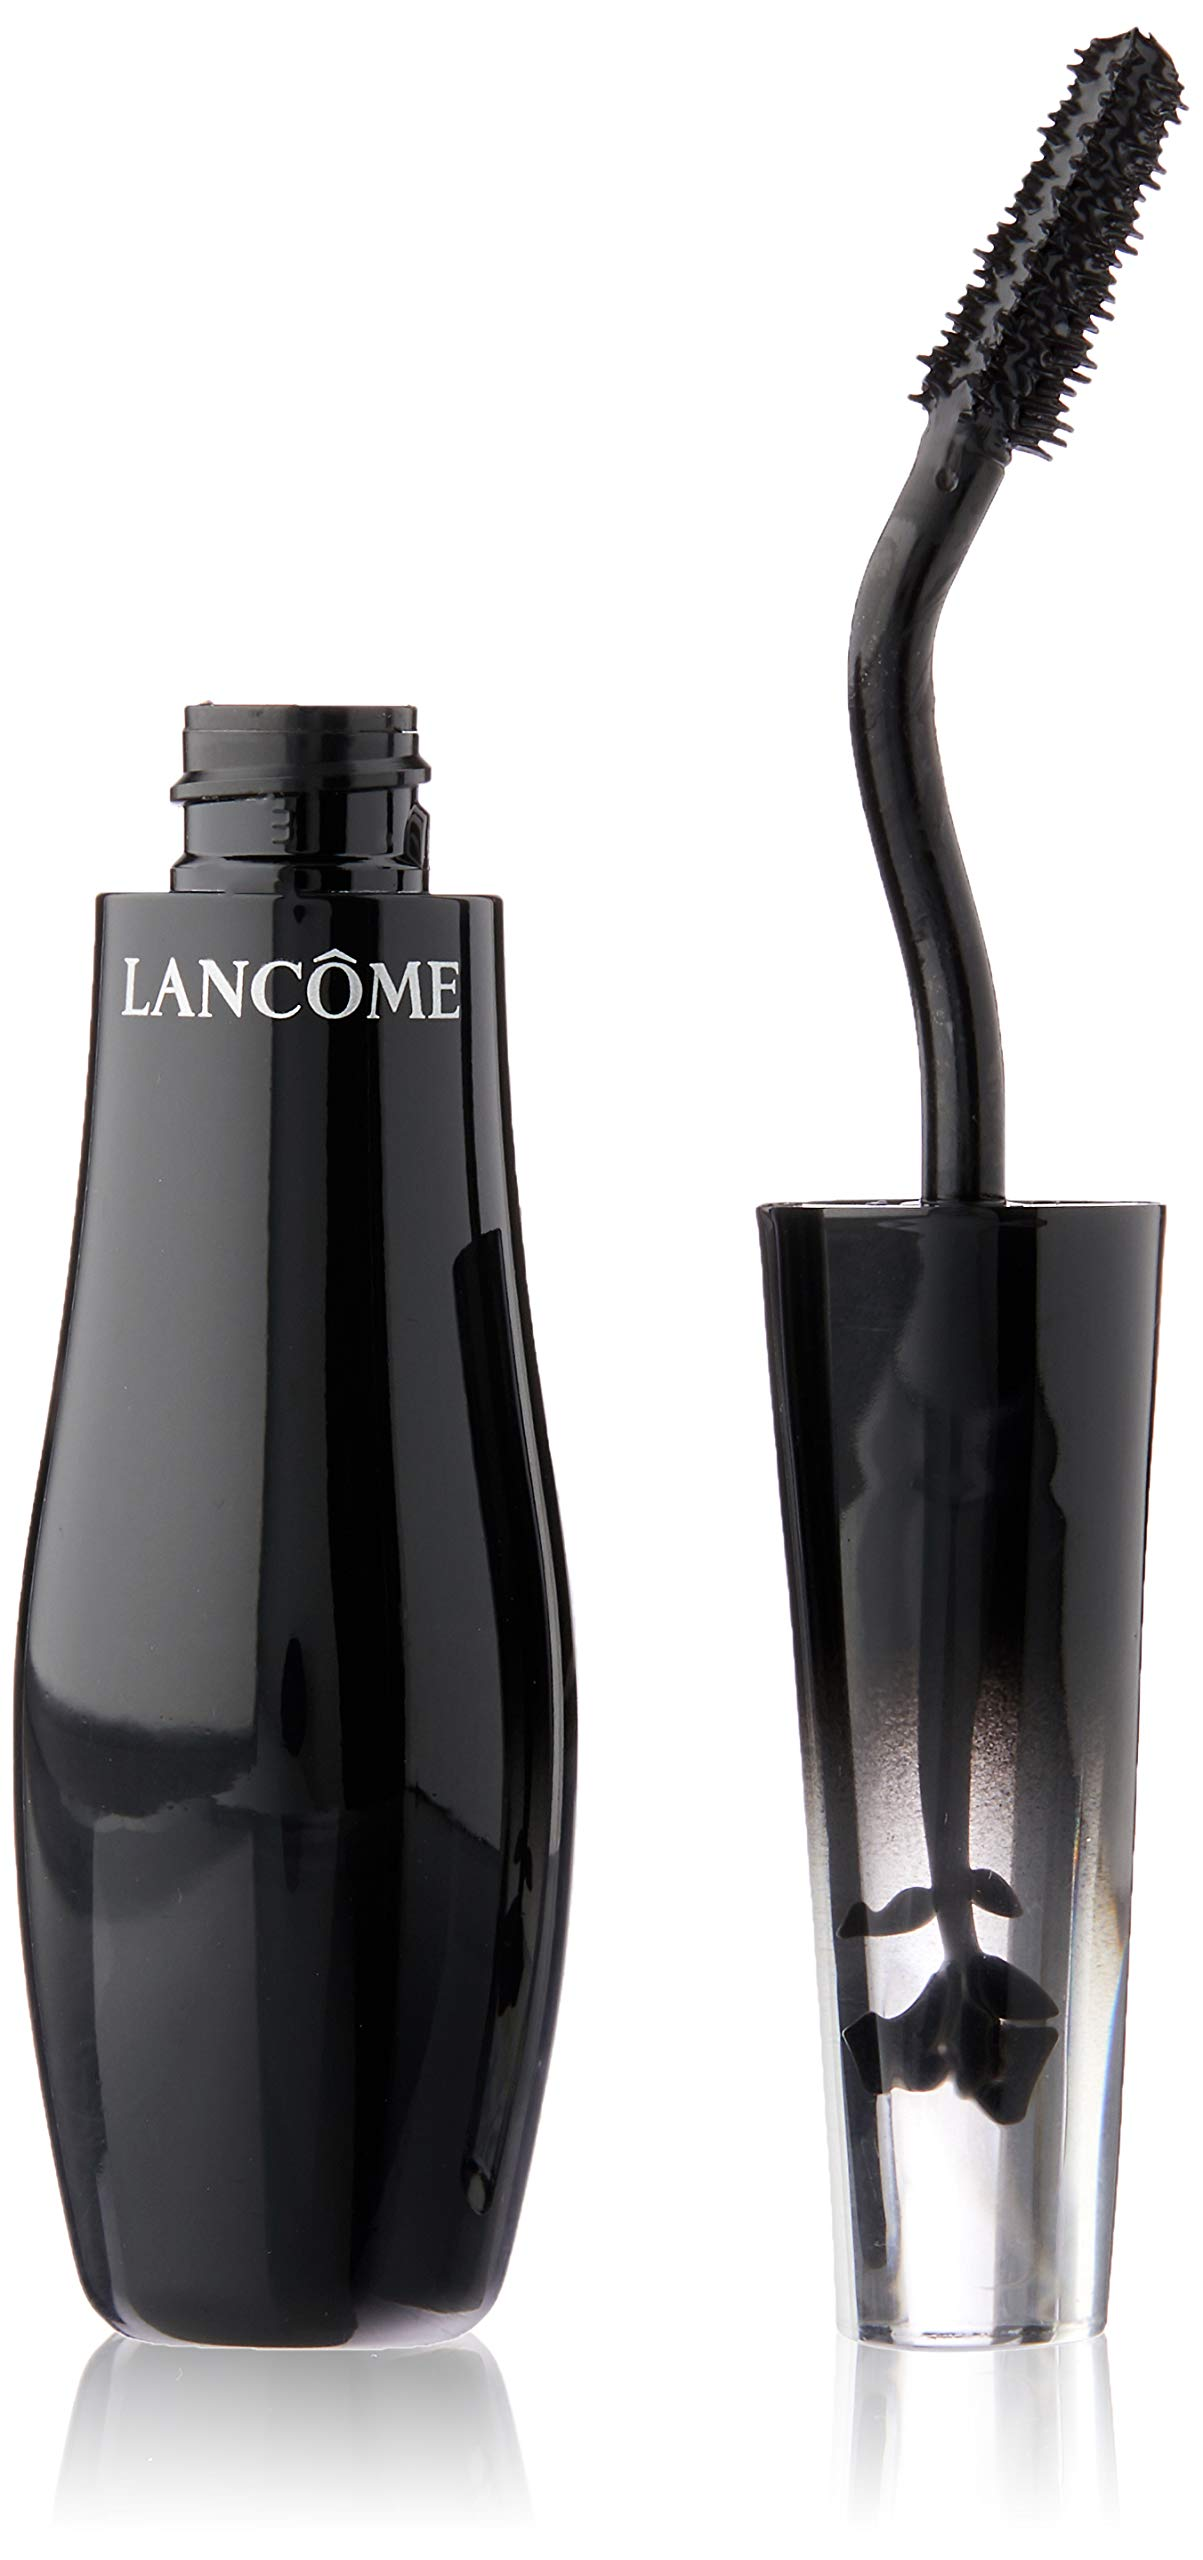 Lancome Grandiose Wide-Angle Fan Effect Mascara, Noir Mirifique, 0.35 Ounce by LANCOME PARIS